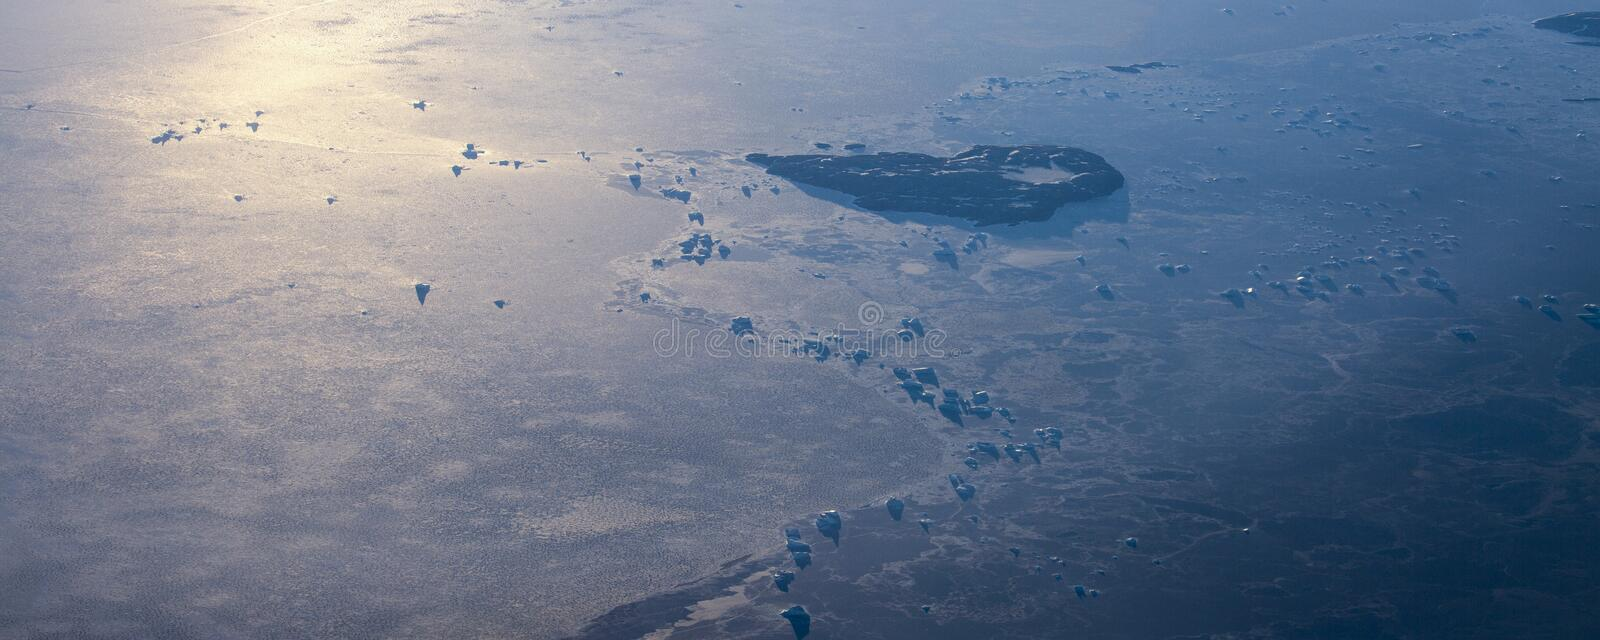 Take a picture of the ice on the bering strait(14). The bering strait is located in the high latitudes, cold weather, many storms and fog, especially stock photos